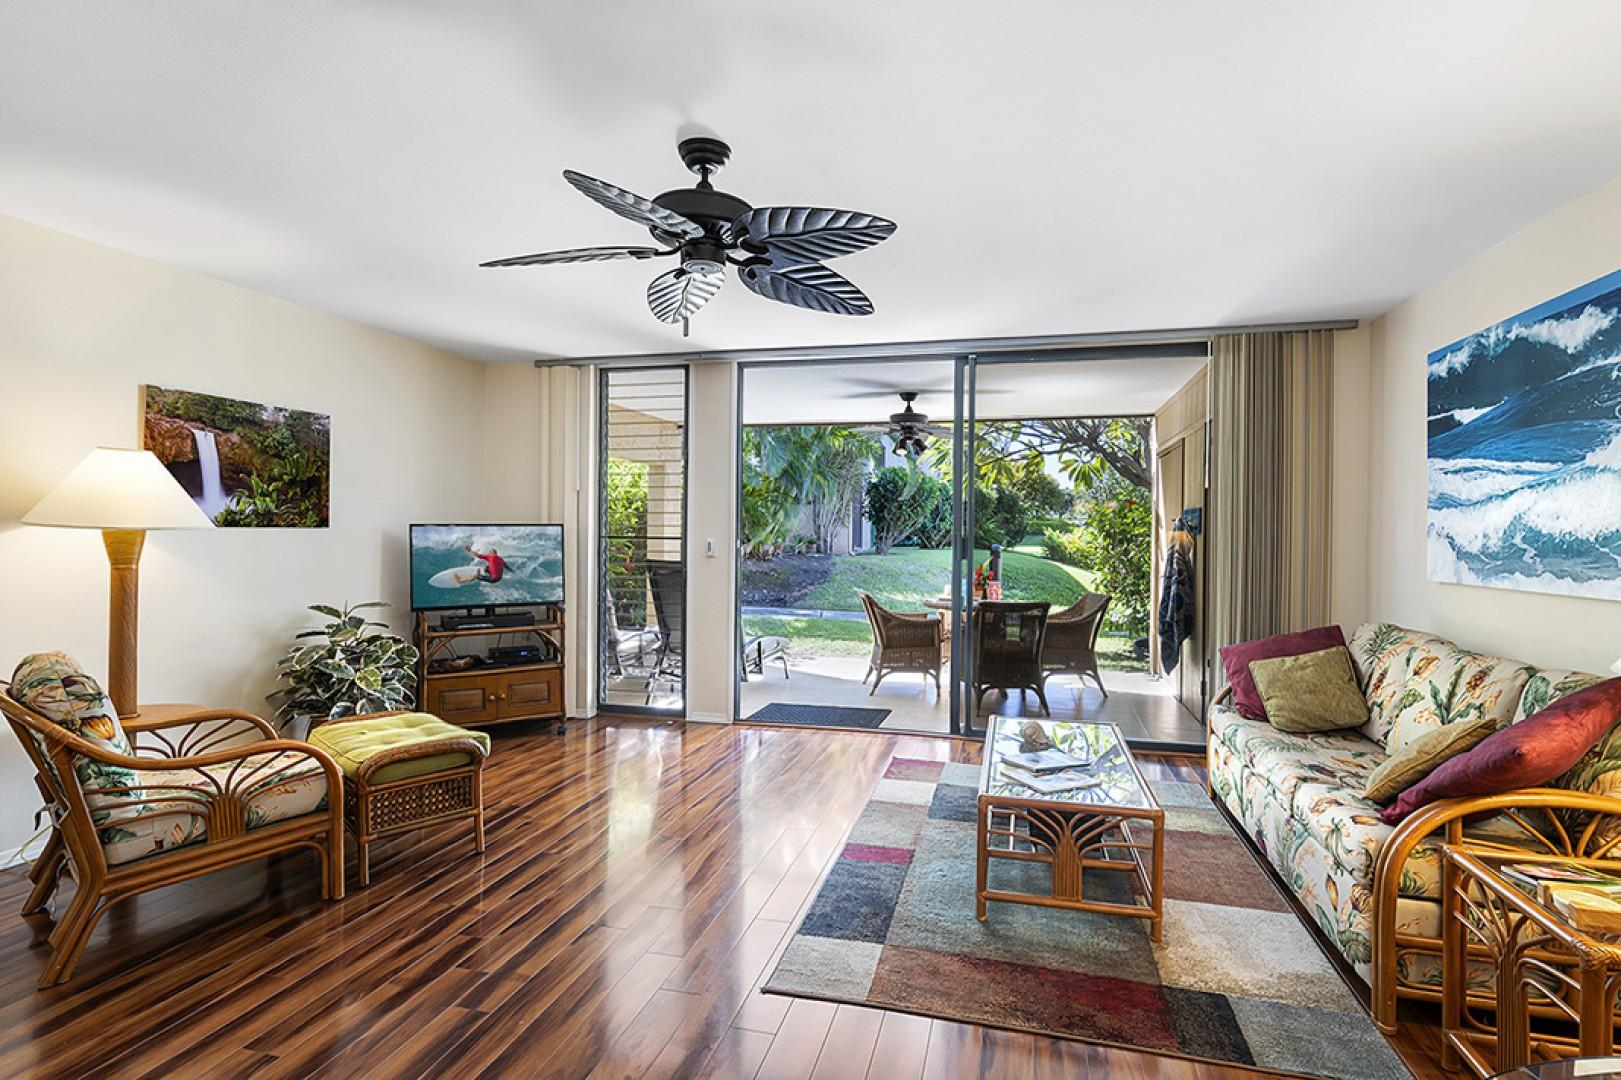 Lanai access from the spacious living room